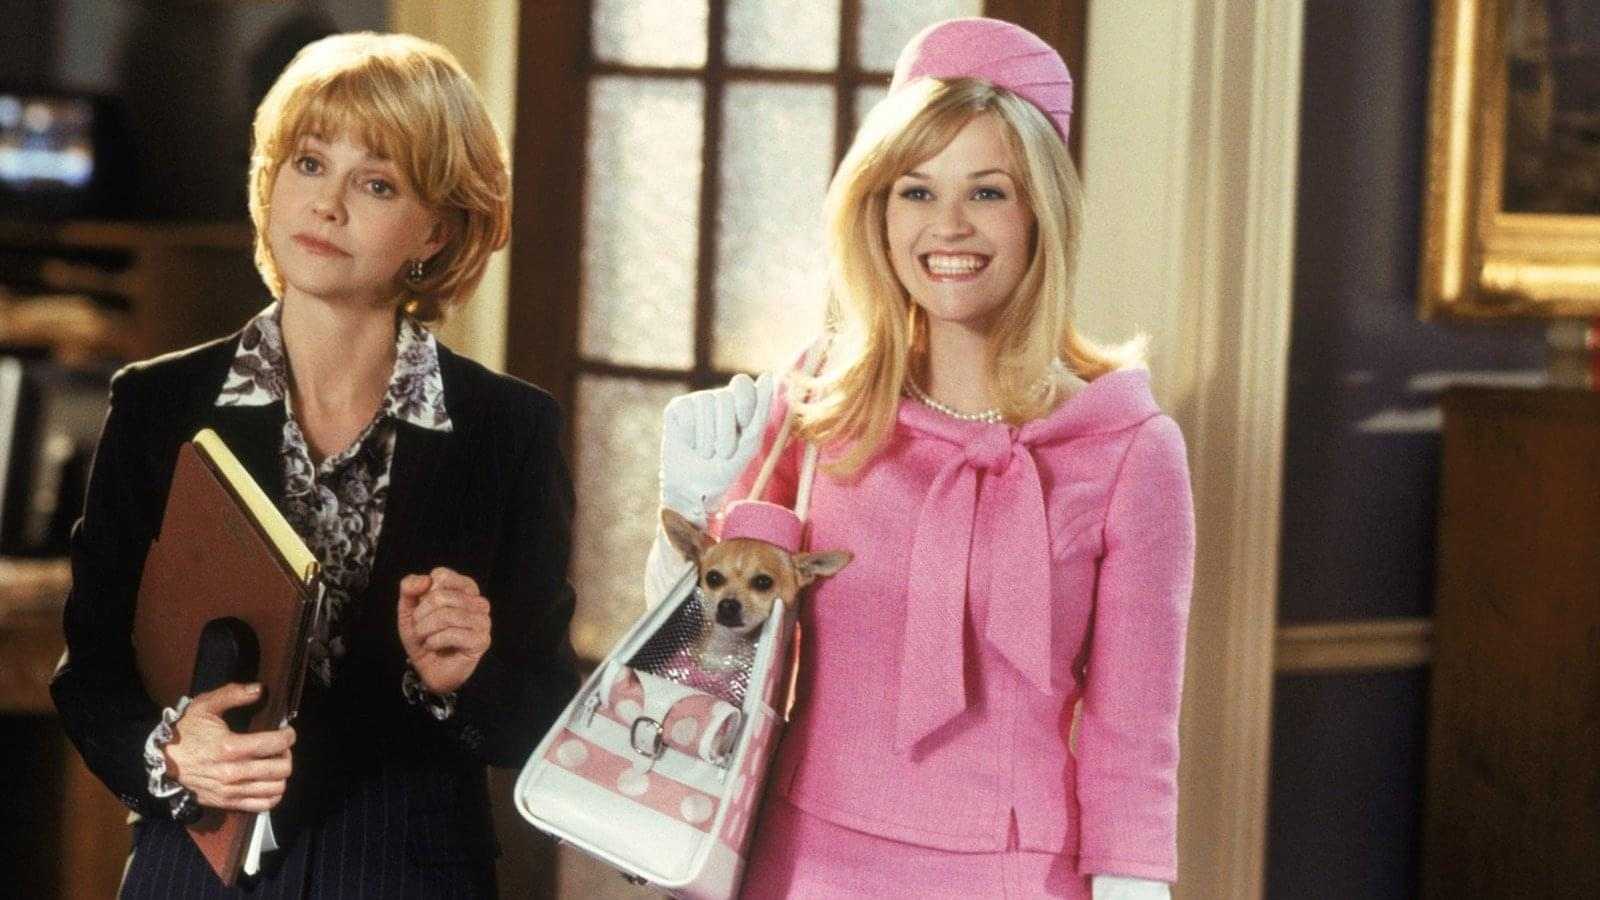 'LEGALLY BLONDE 3' IS OFFICIALLY HAPPENING